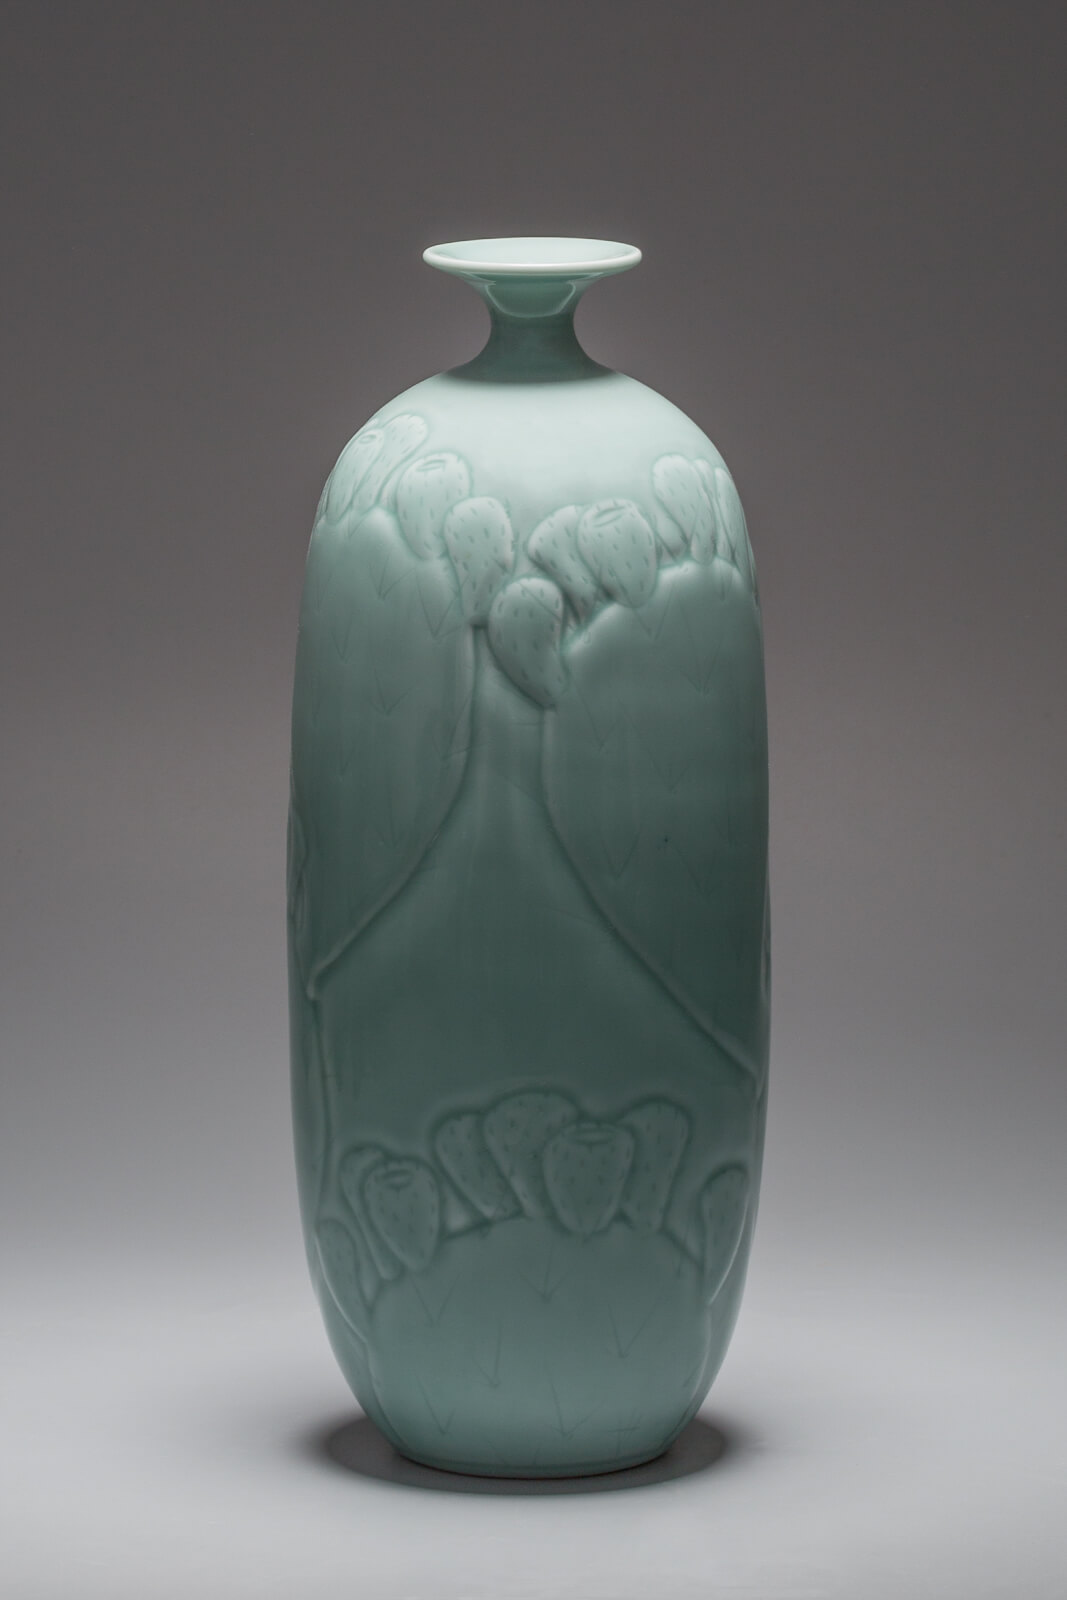 Prickly Pear Bottle, carved porcelain